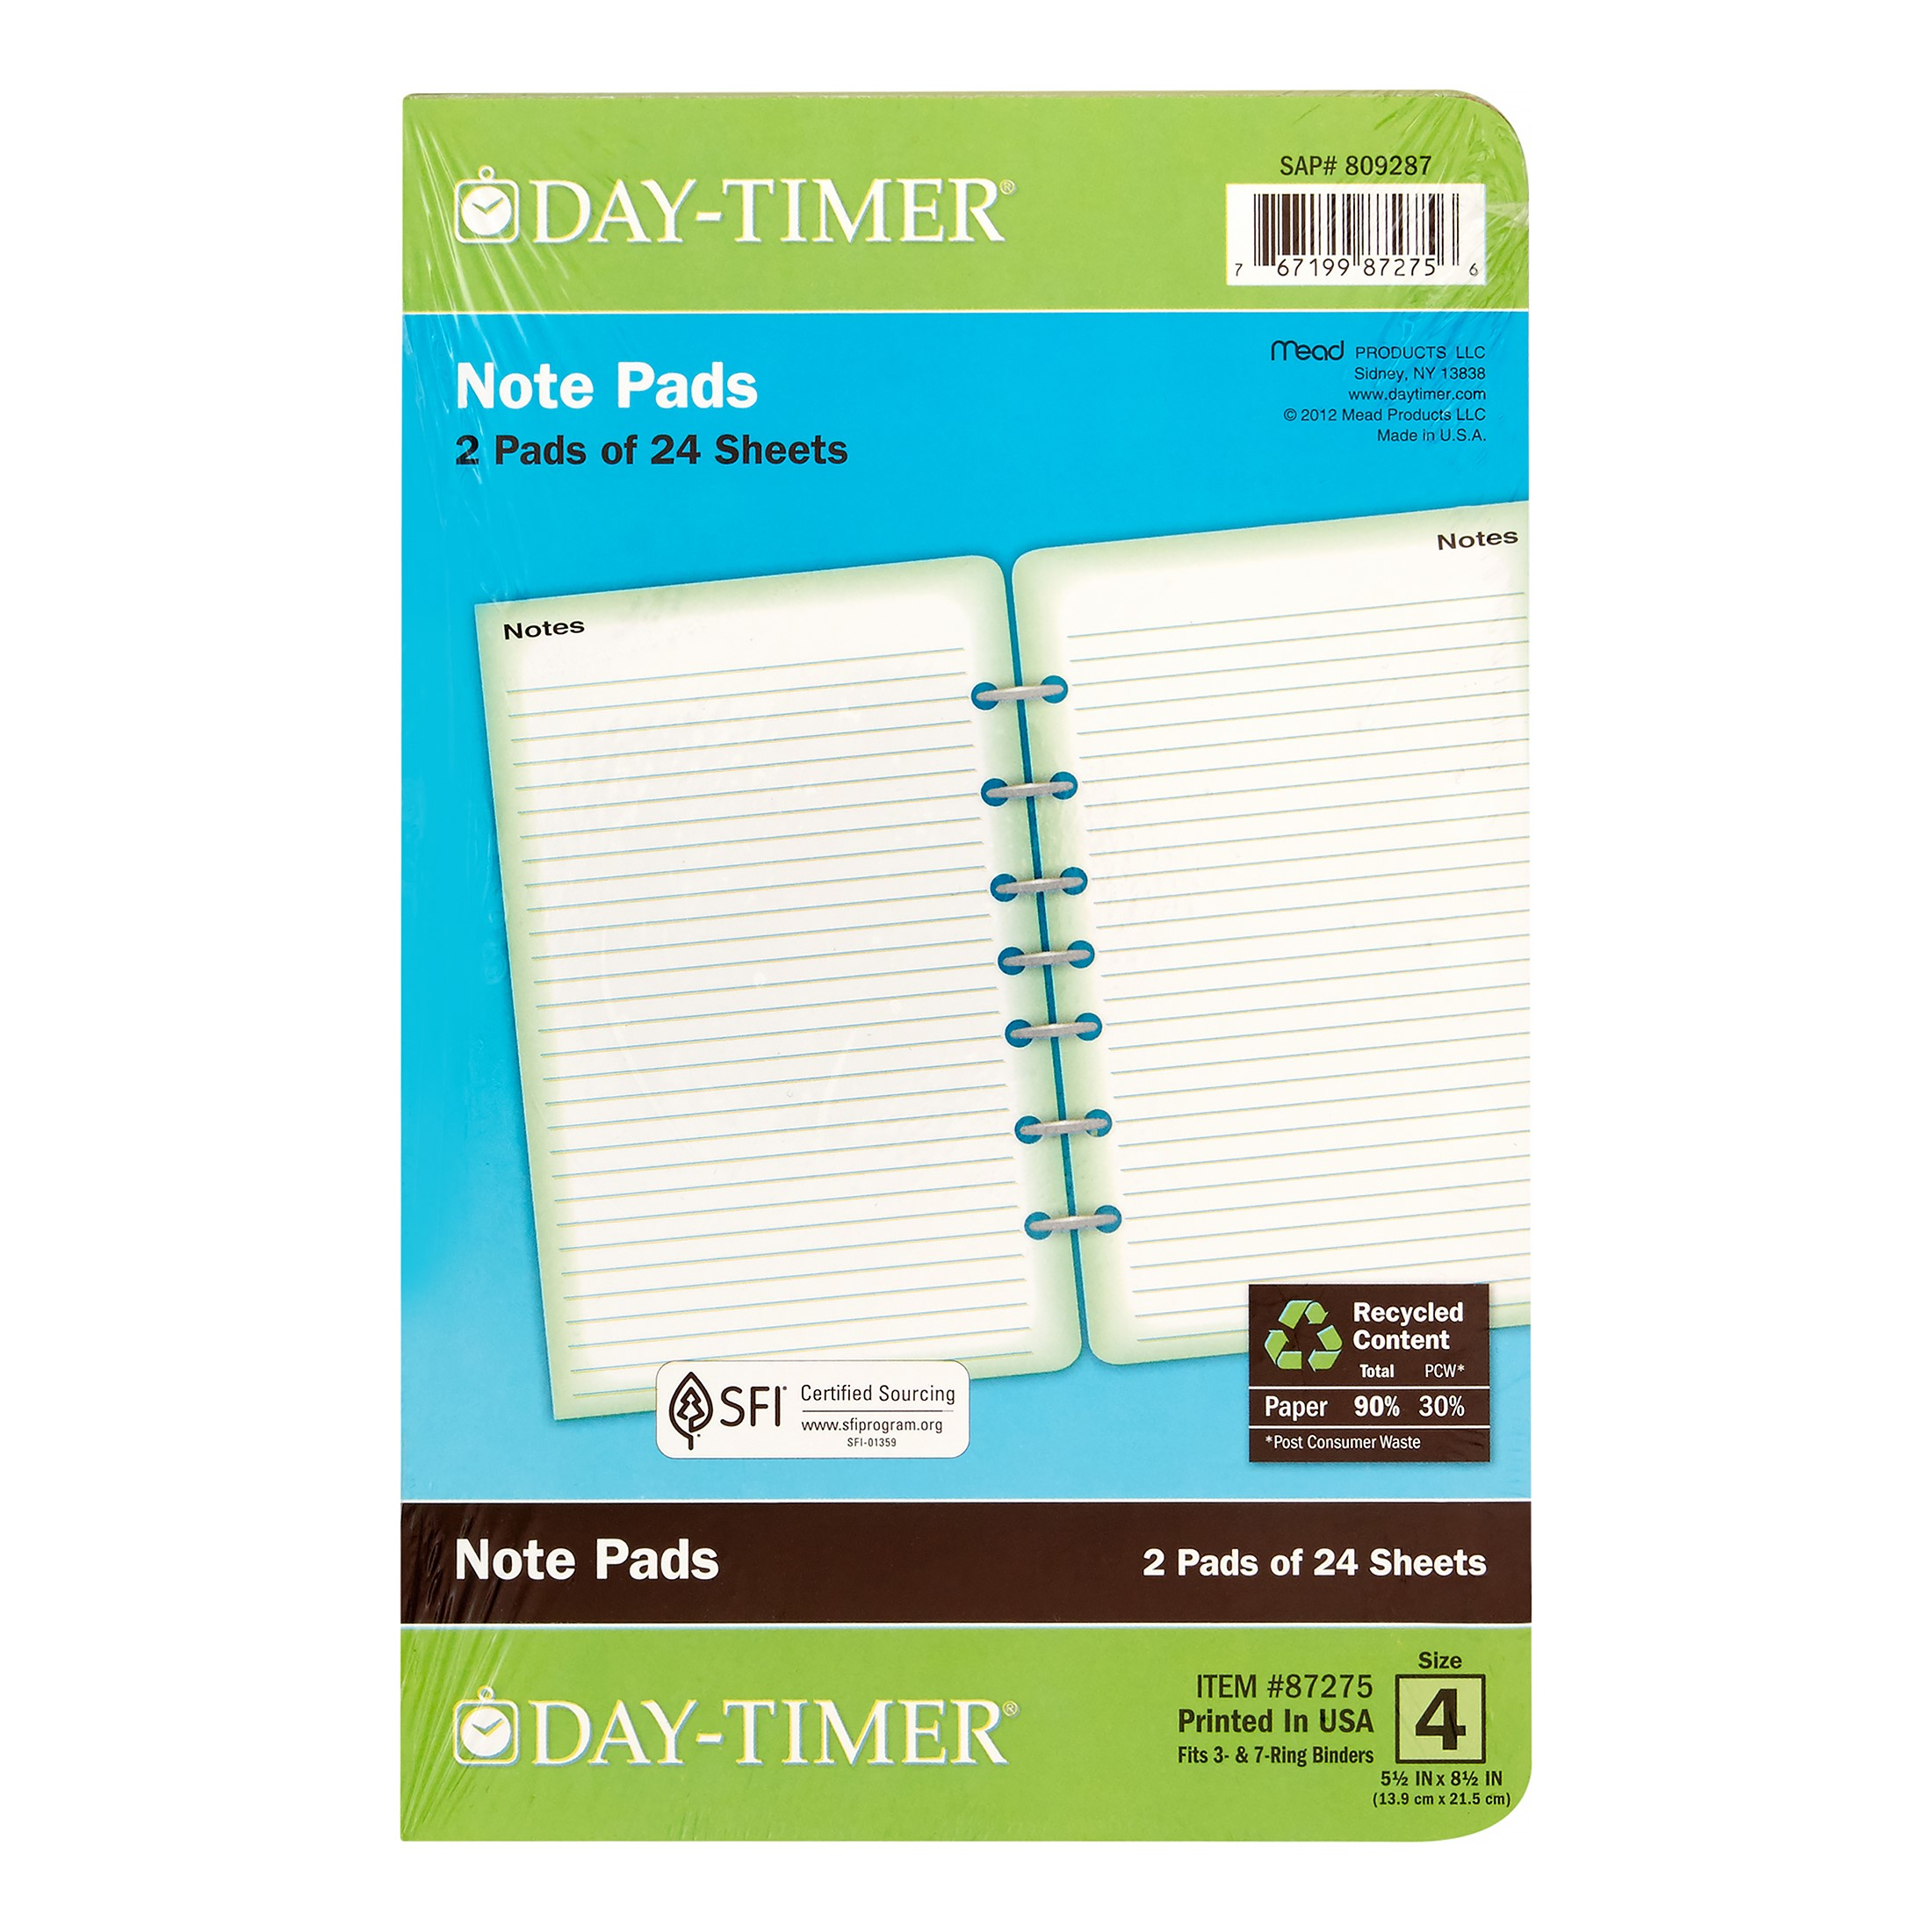 "Day-Timer Notepad, Desk Size, 5 ?"" x 8 ?"", 2 Pack"